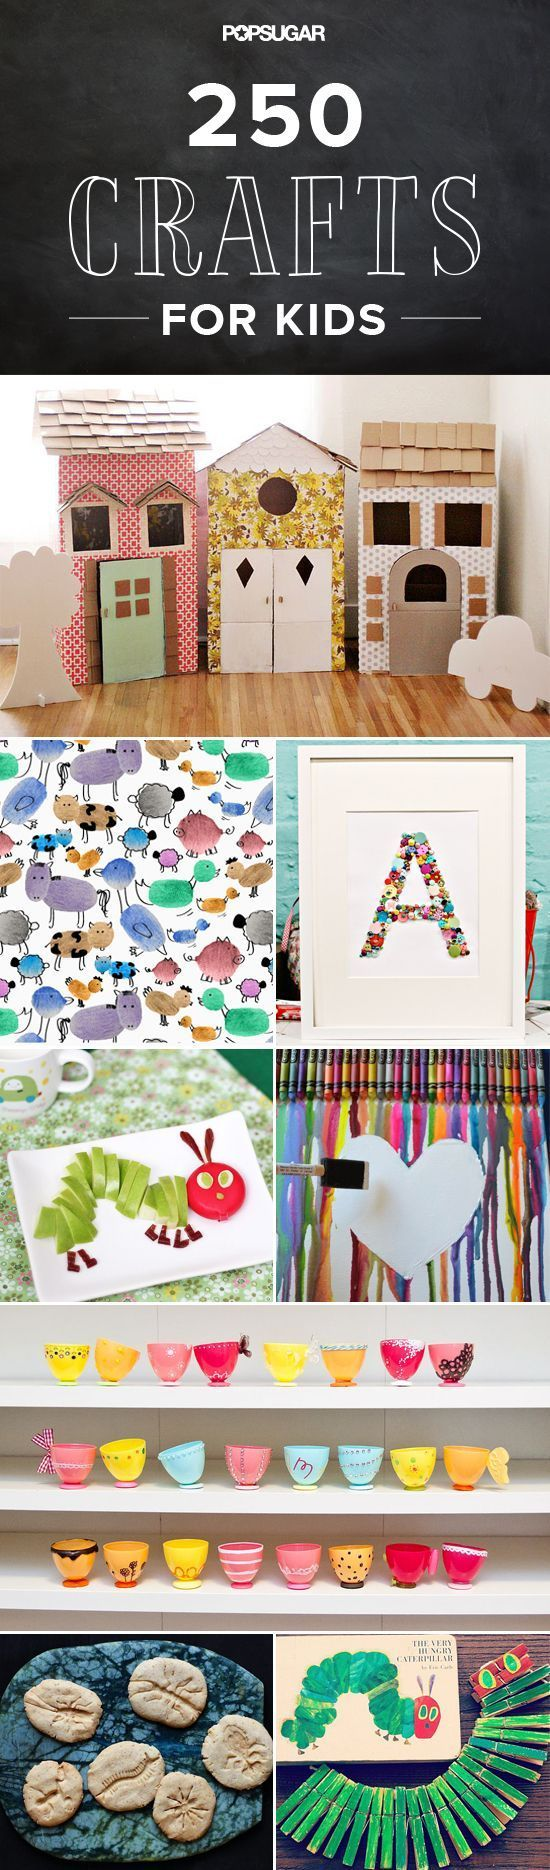 We're about to shake things up for you when it comes to kid crafts. There are plenty of ways to hone your child's talents and we've rounded up more than 200 crafts guaranteed to keep your little artist very happy.